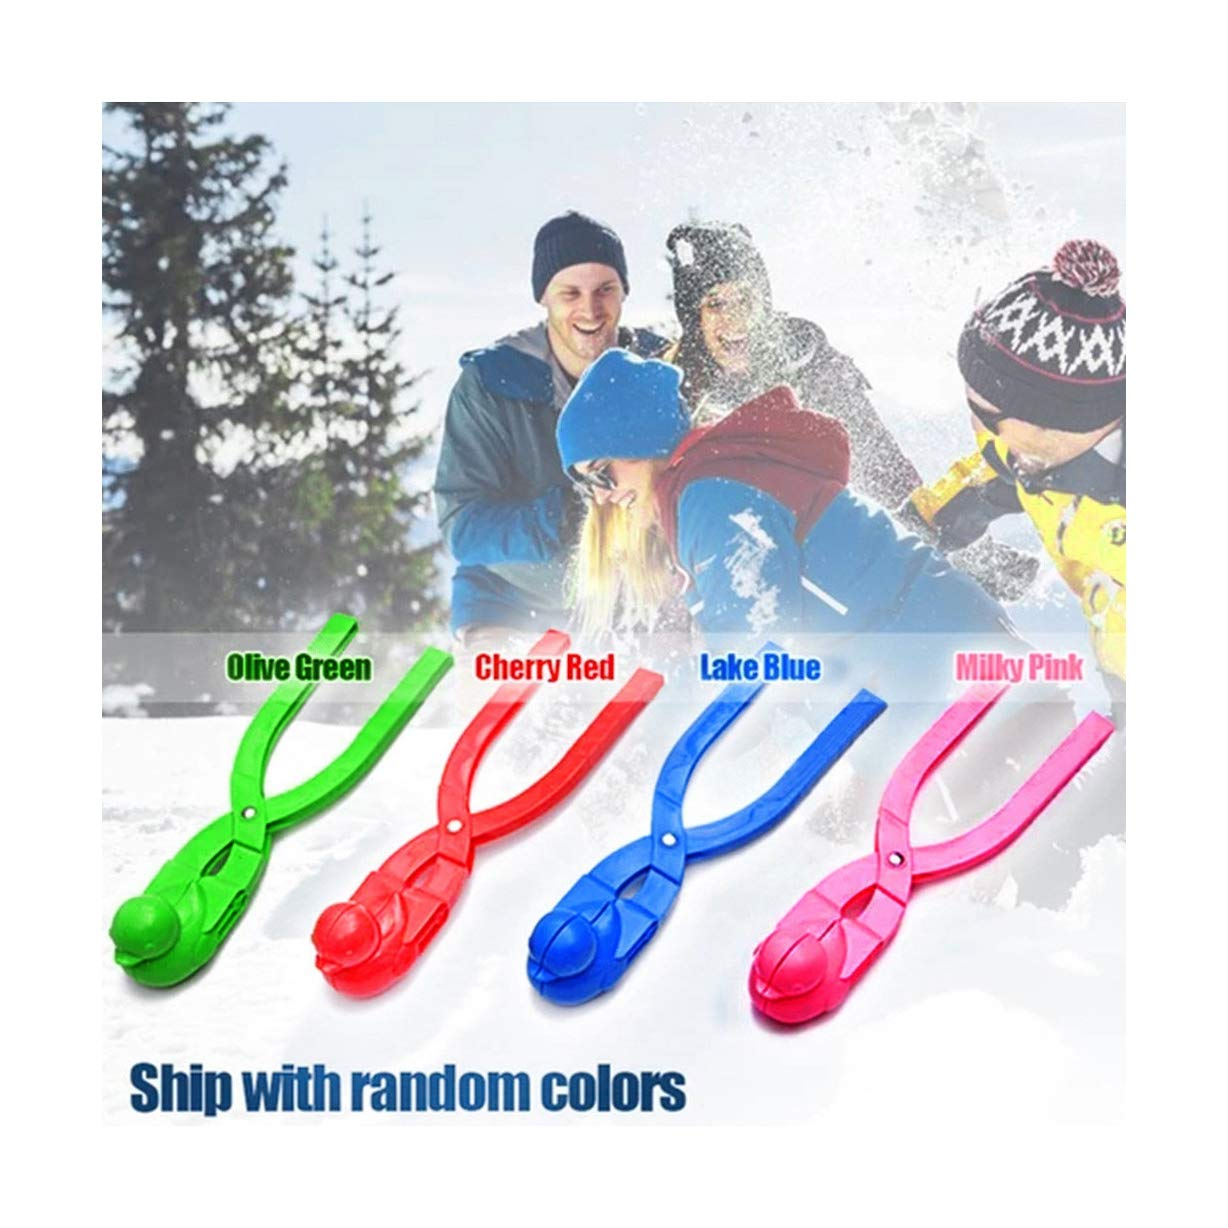 LLguz Snow Making Mold Clip Duck Shape Sand Snowball Maker Mould Toys Play Tool for Winter Kids,8.2x2.3x1.5 Blue